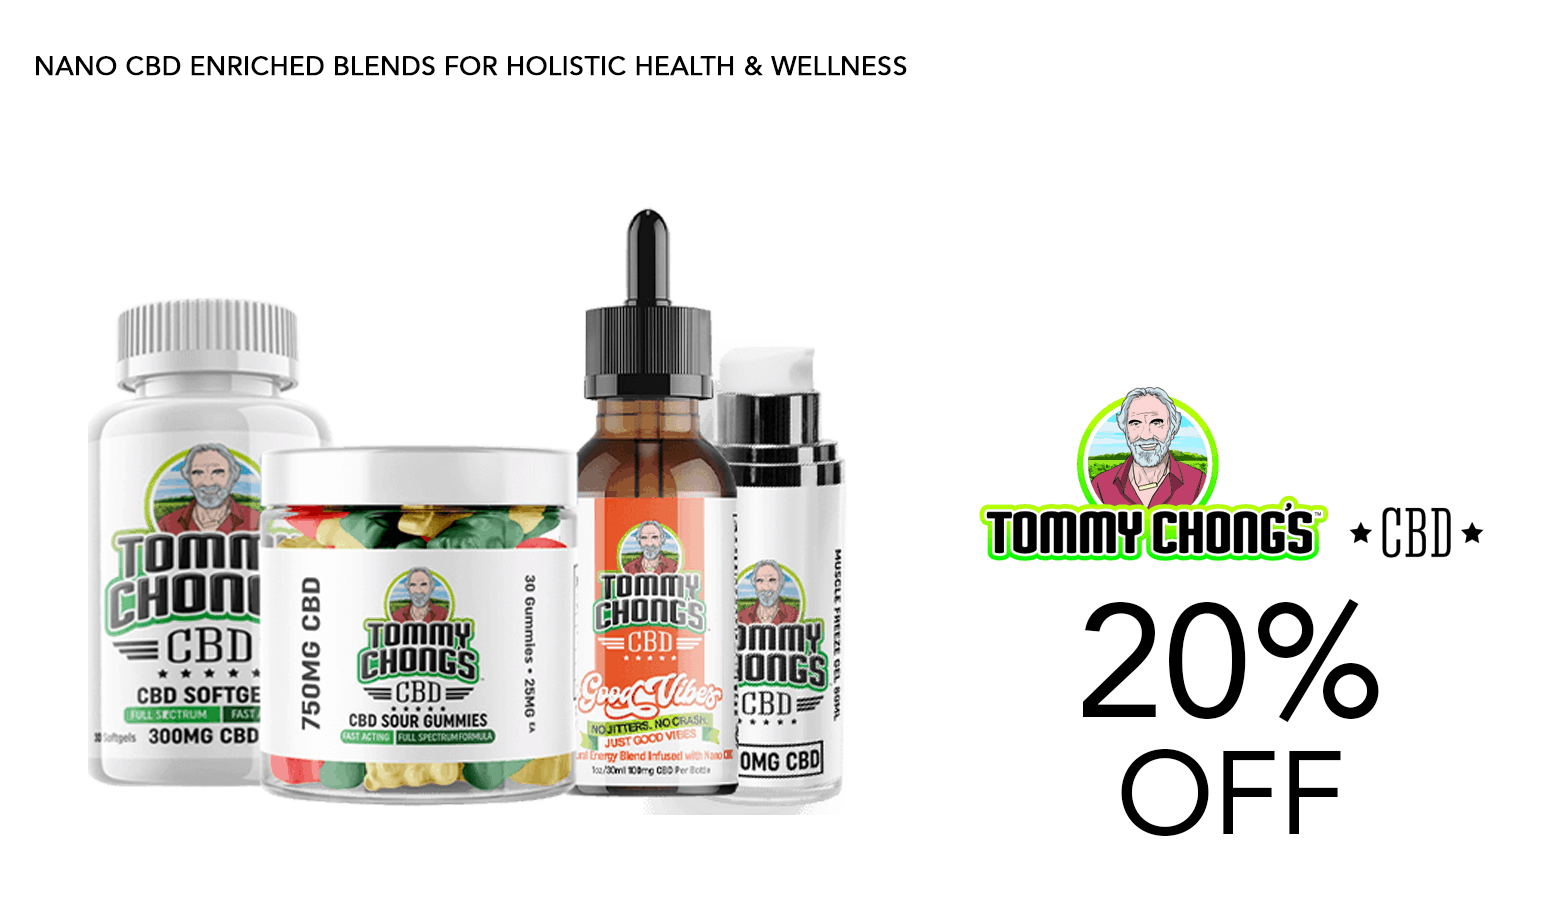 Tommy Chongs CBD Coupon Code Offer Website